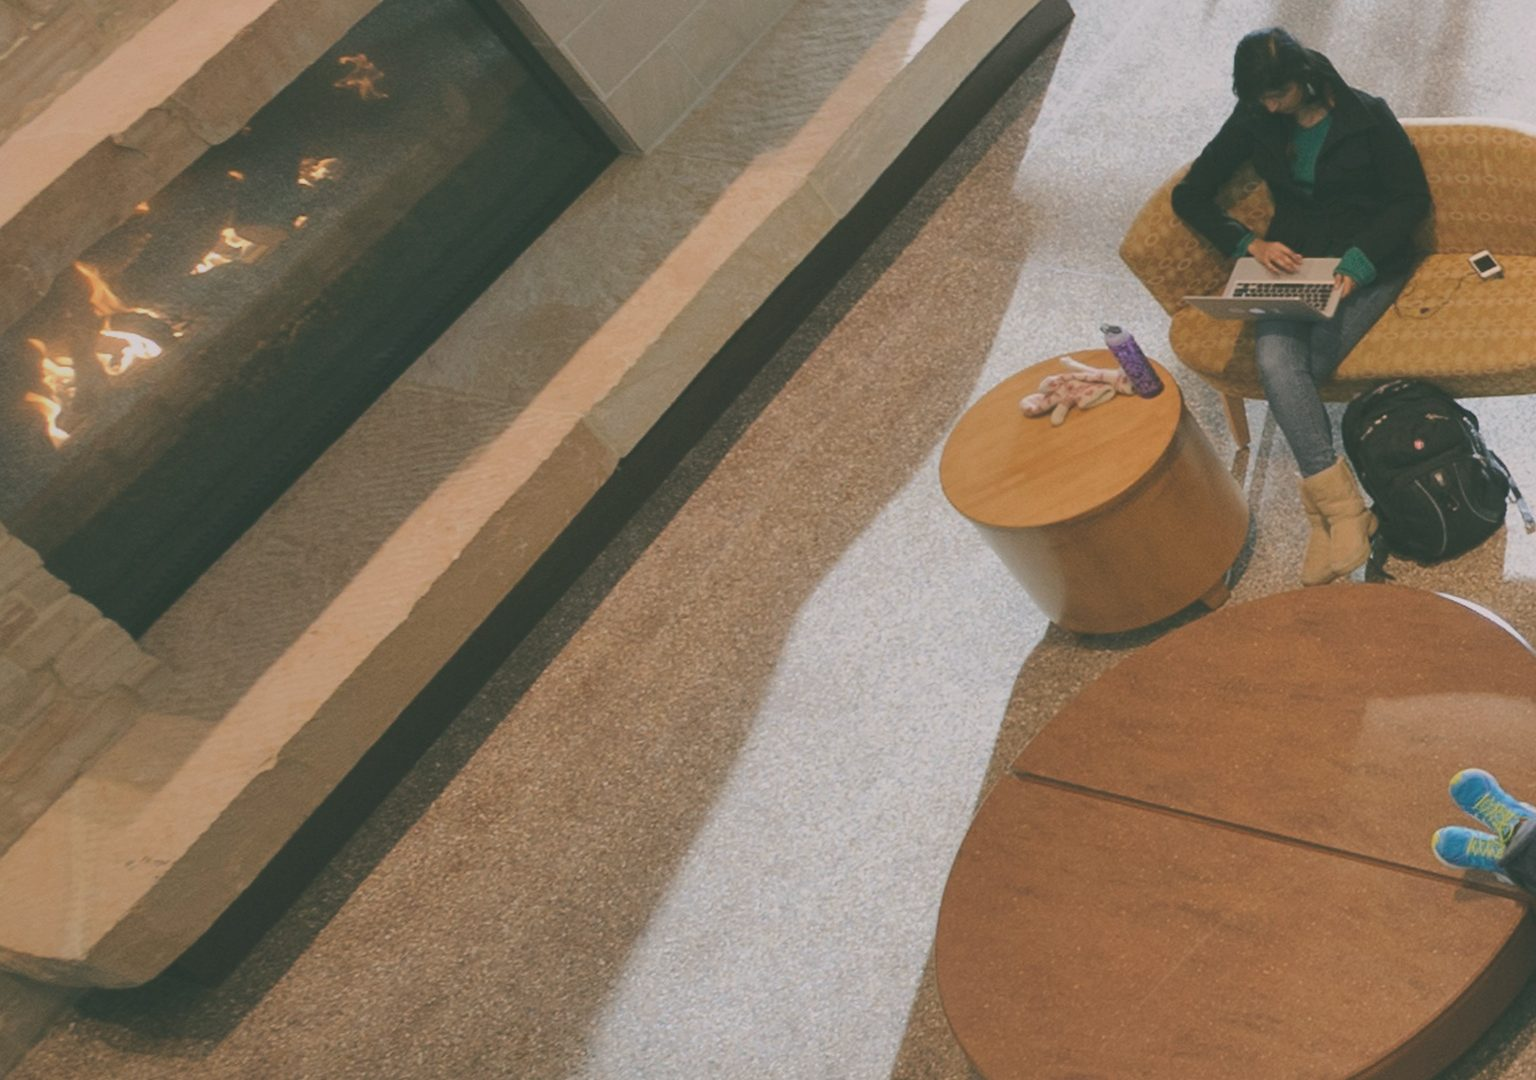 Overhead view of fireplace and tables occupied by people inside of Union South